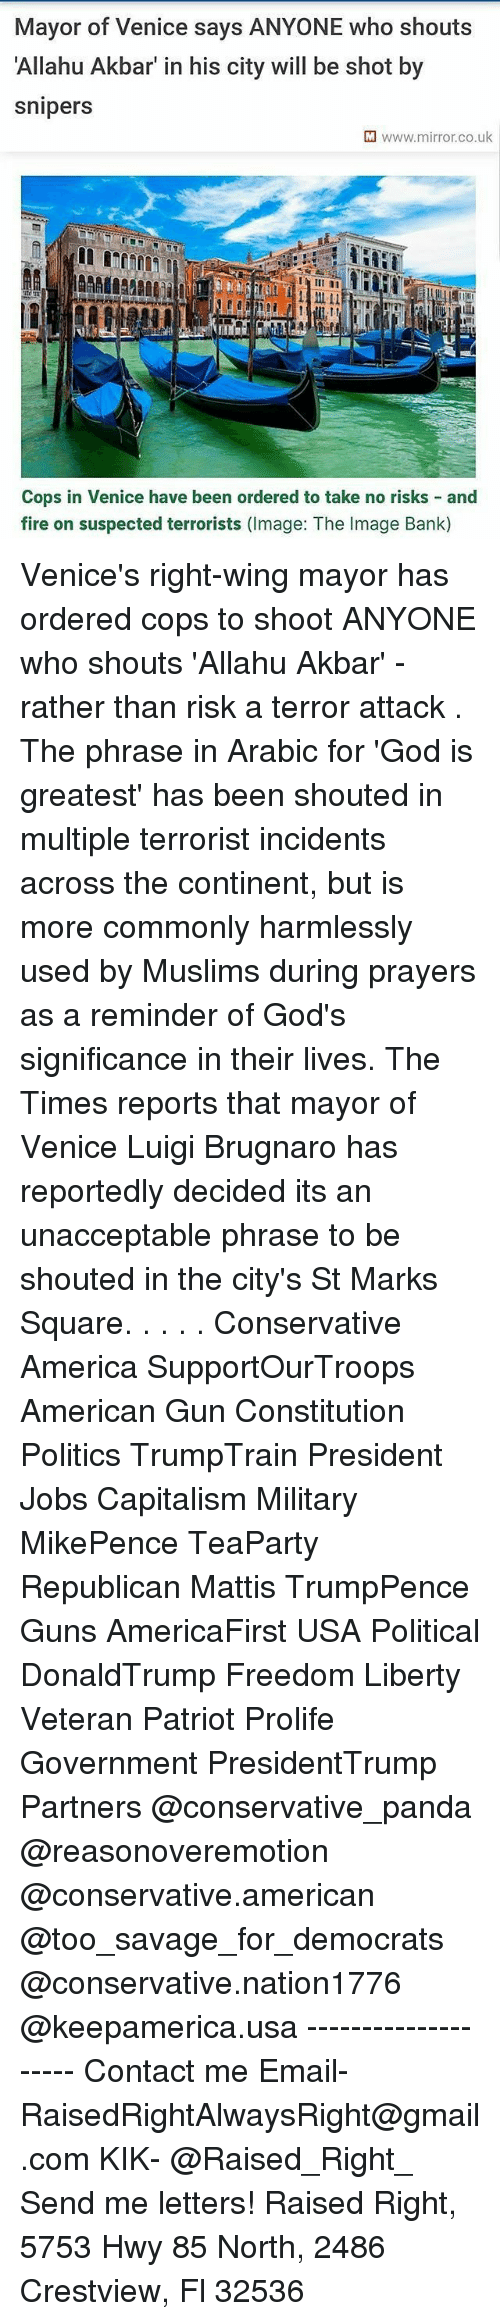 Allahu Akbar, America, and Fire: Mayor of Venice says ANYONE who shouts  Allahu Akbar' in his city will be shot by  snipers  M www.mirror.co.uk  Cops in Venice have been ordered to take no risks and  fire on suspected terrorists (Image: The Image Bank) Venice's right-wing mayor has ordered cops to shoot ANYONE who shouts 'Allahu Akbar' - rather than risk a terror attack . The phrase in Arabic for 'God is greatest' has been shouted in multiple terrorist incidents across the continent, but is more commonly harmlessly used by Muslims during prayers as a reminder of God's significance in their lives. The Times reports that mayor of Venice Luigi Brugnaro has reportedly decided its an unacceptable phrase to be shouted in the city's St Marks Square. . . . . Conservative America SupportOurTroops American Gun Constitution Politics TrumpTrain President Jobs Capitalism Military MikePence TeaParty Republican Mattis TrumpPence Guns AmericaFirst USA Political DonaldTrump Freedom Liberty Veteran Patriot Prolife Government PresidentTrump Partners @conservative_panda @reasonoveremotion @conservative.american @too_savage_for_democrats @conservative.nation1776 @keepamerica.usa -------------------- Contact me ●Email- RaisedRightAlwaysRight@gmail.com ●KIK- @Raised_Right_ ●Send me letters! Raised Right, 5753 Hwy 85 North, 2486 Crestview, Fl 32536